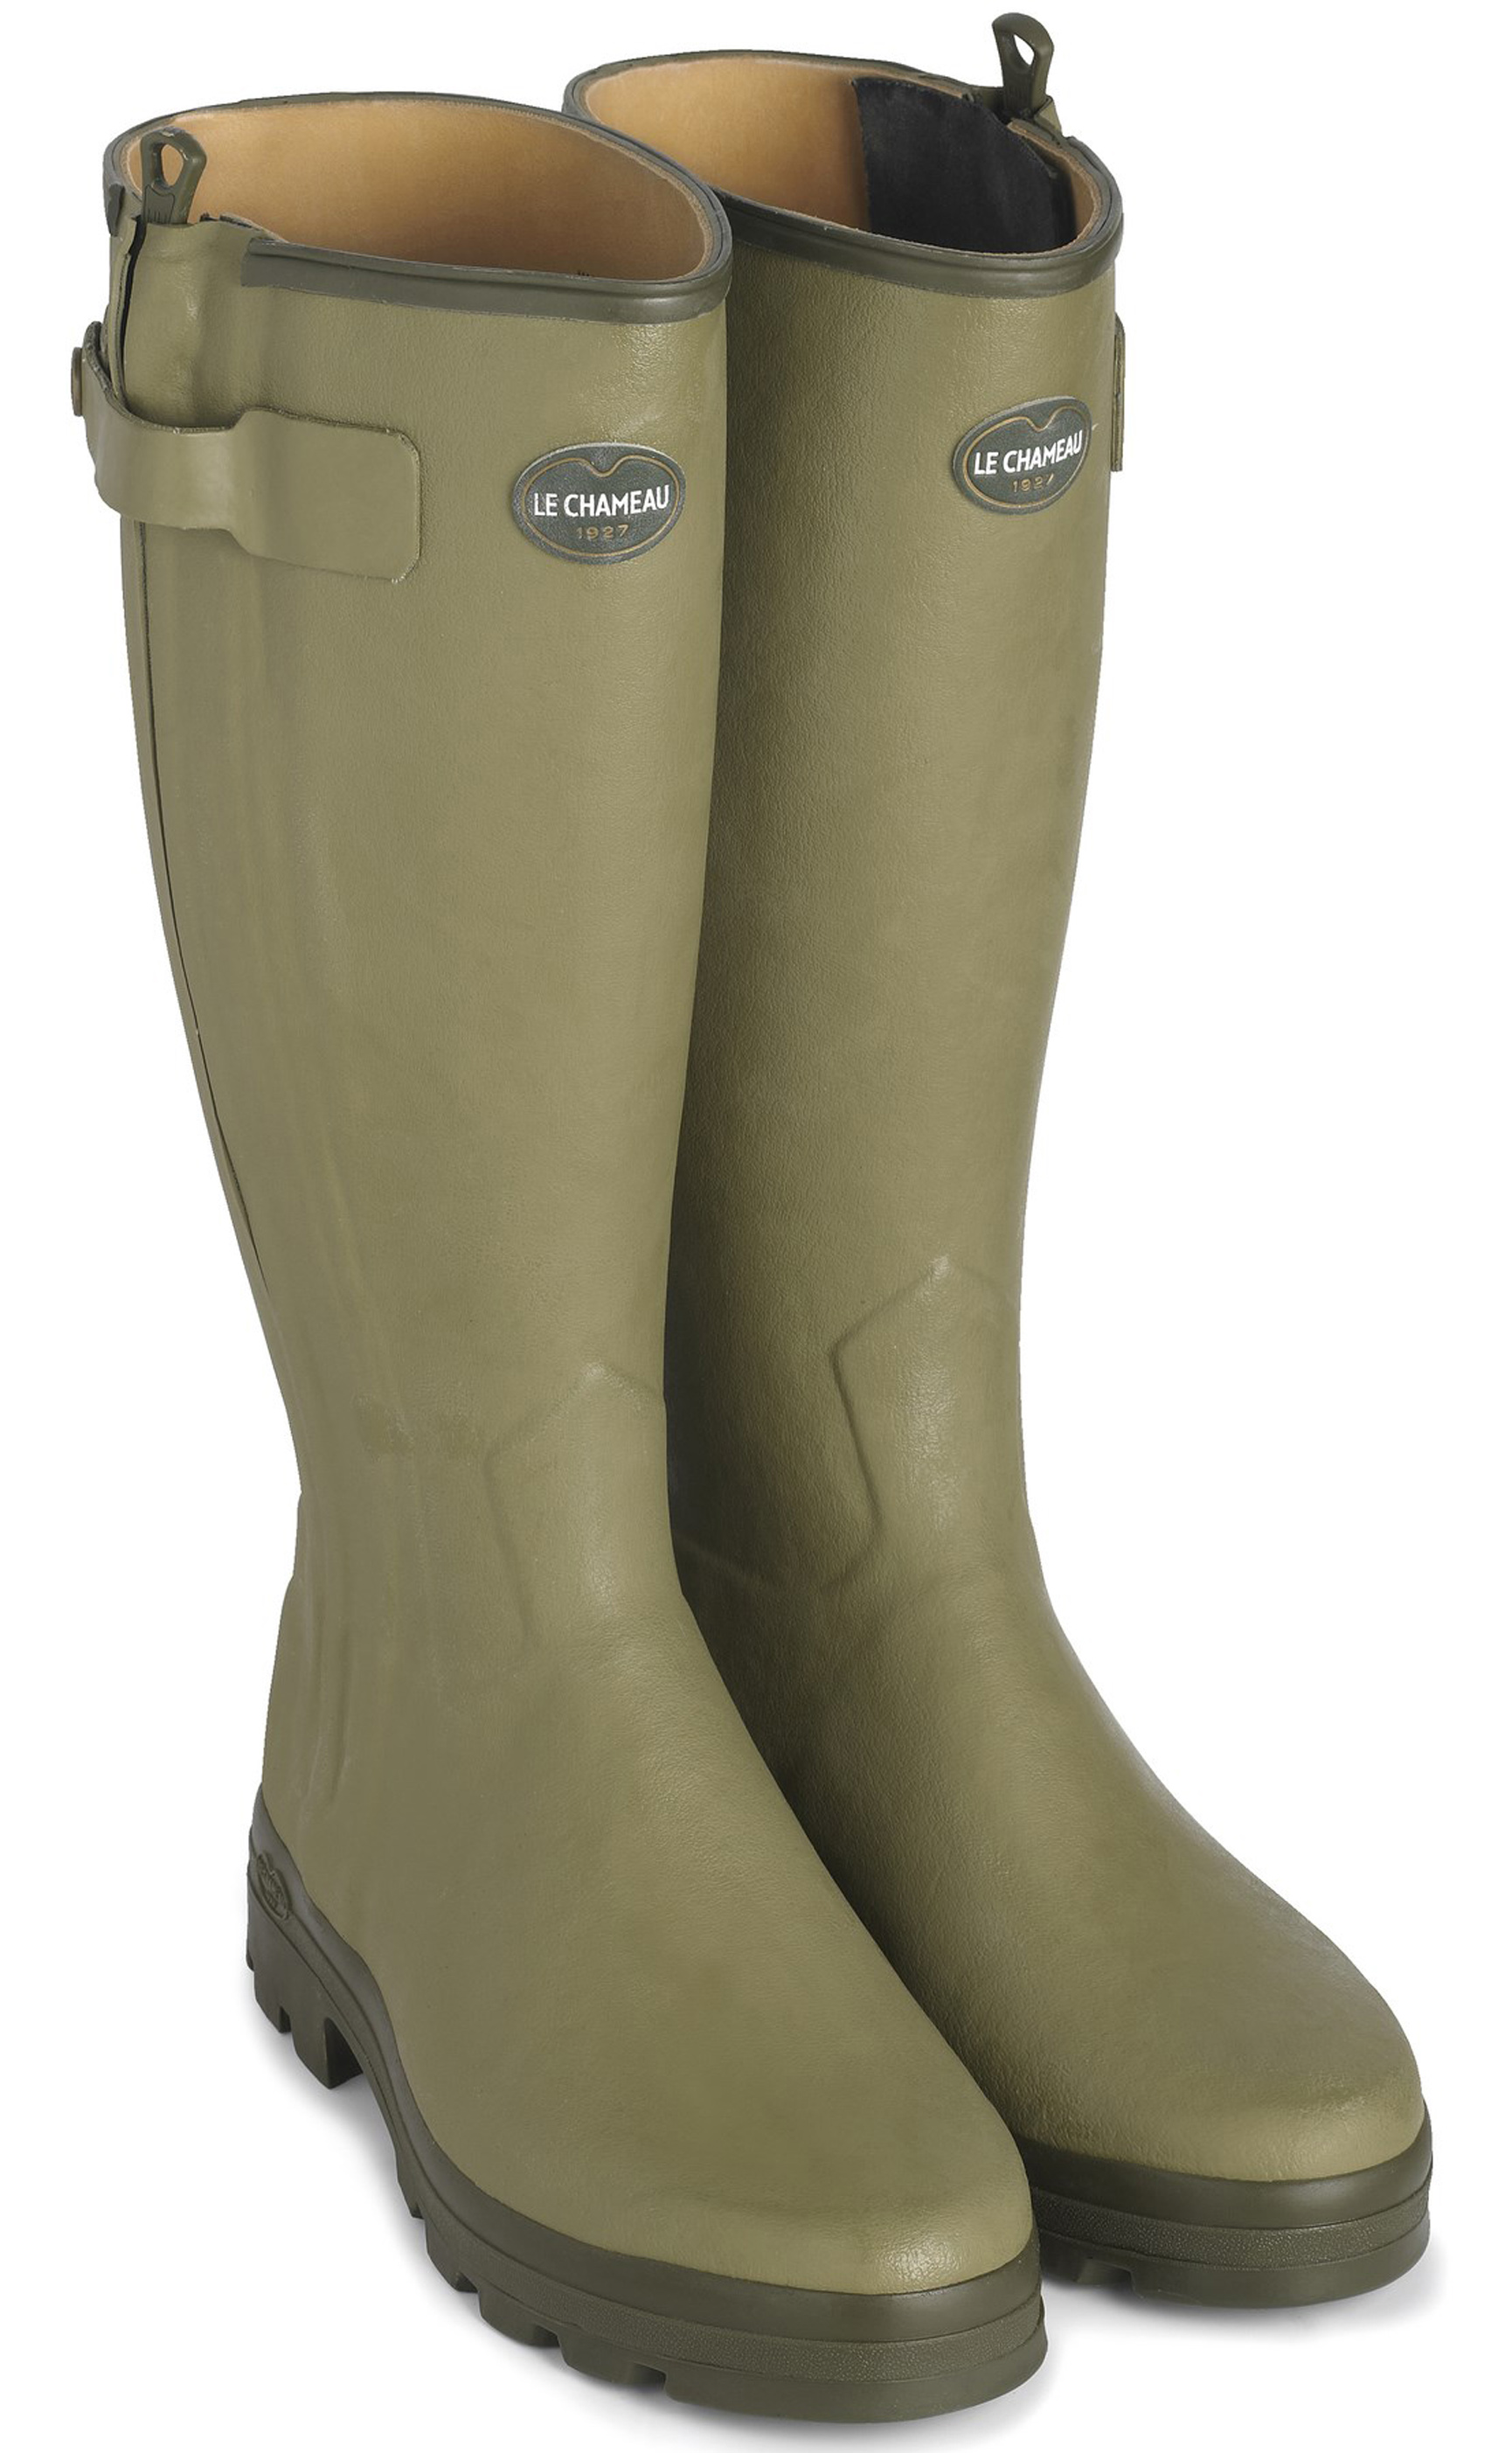 Le Chameau Boots for Winter Walks at Philip Morris and Son